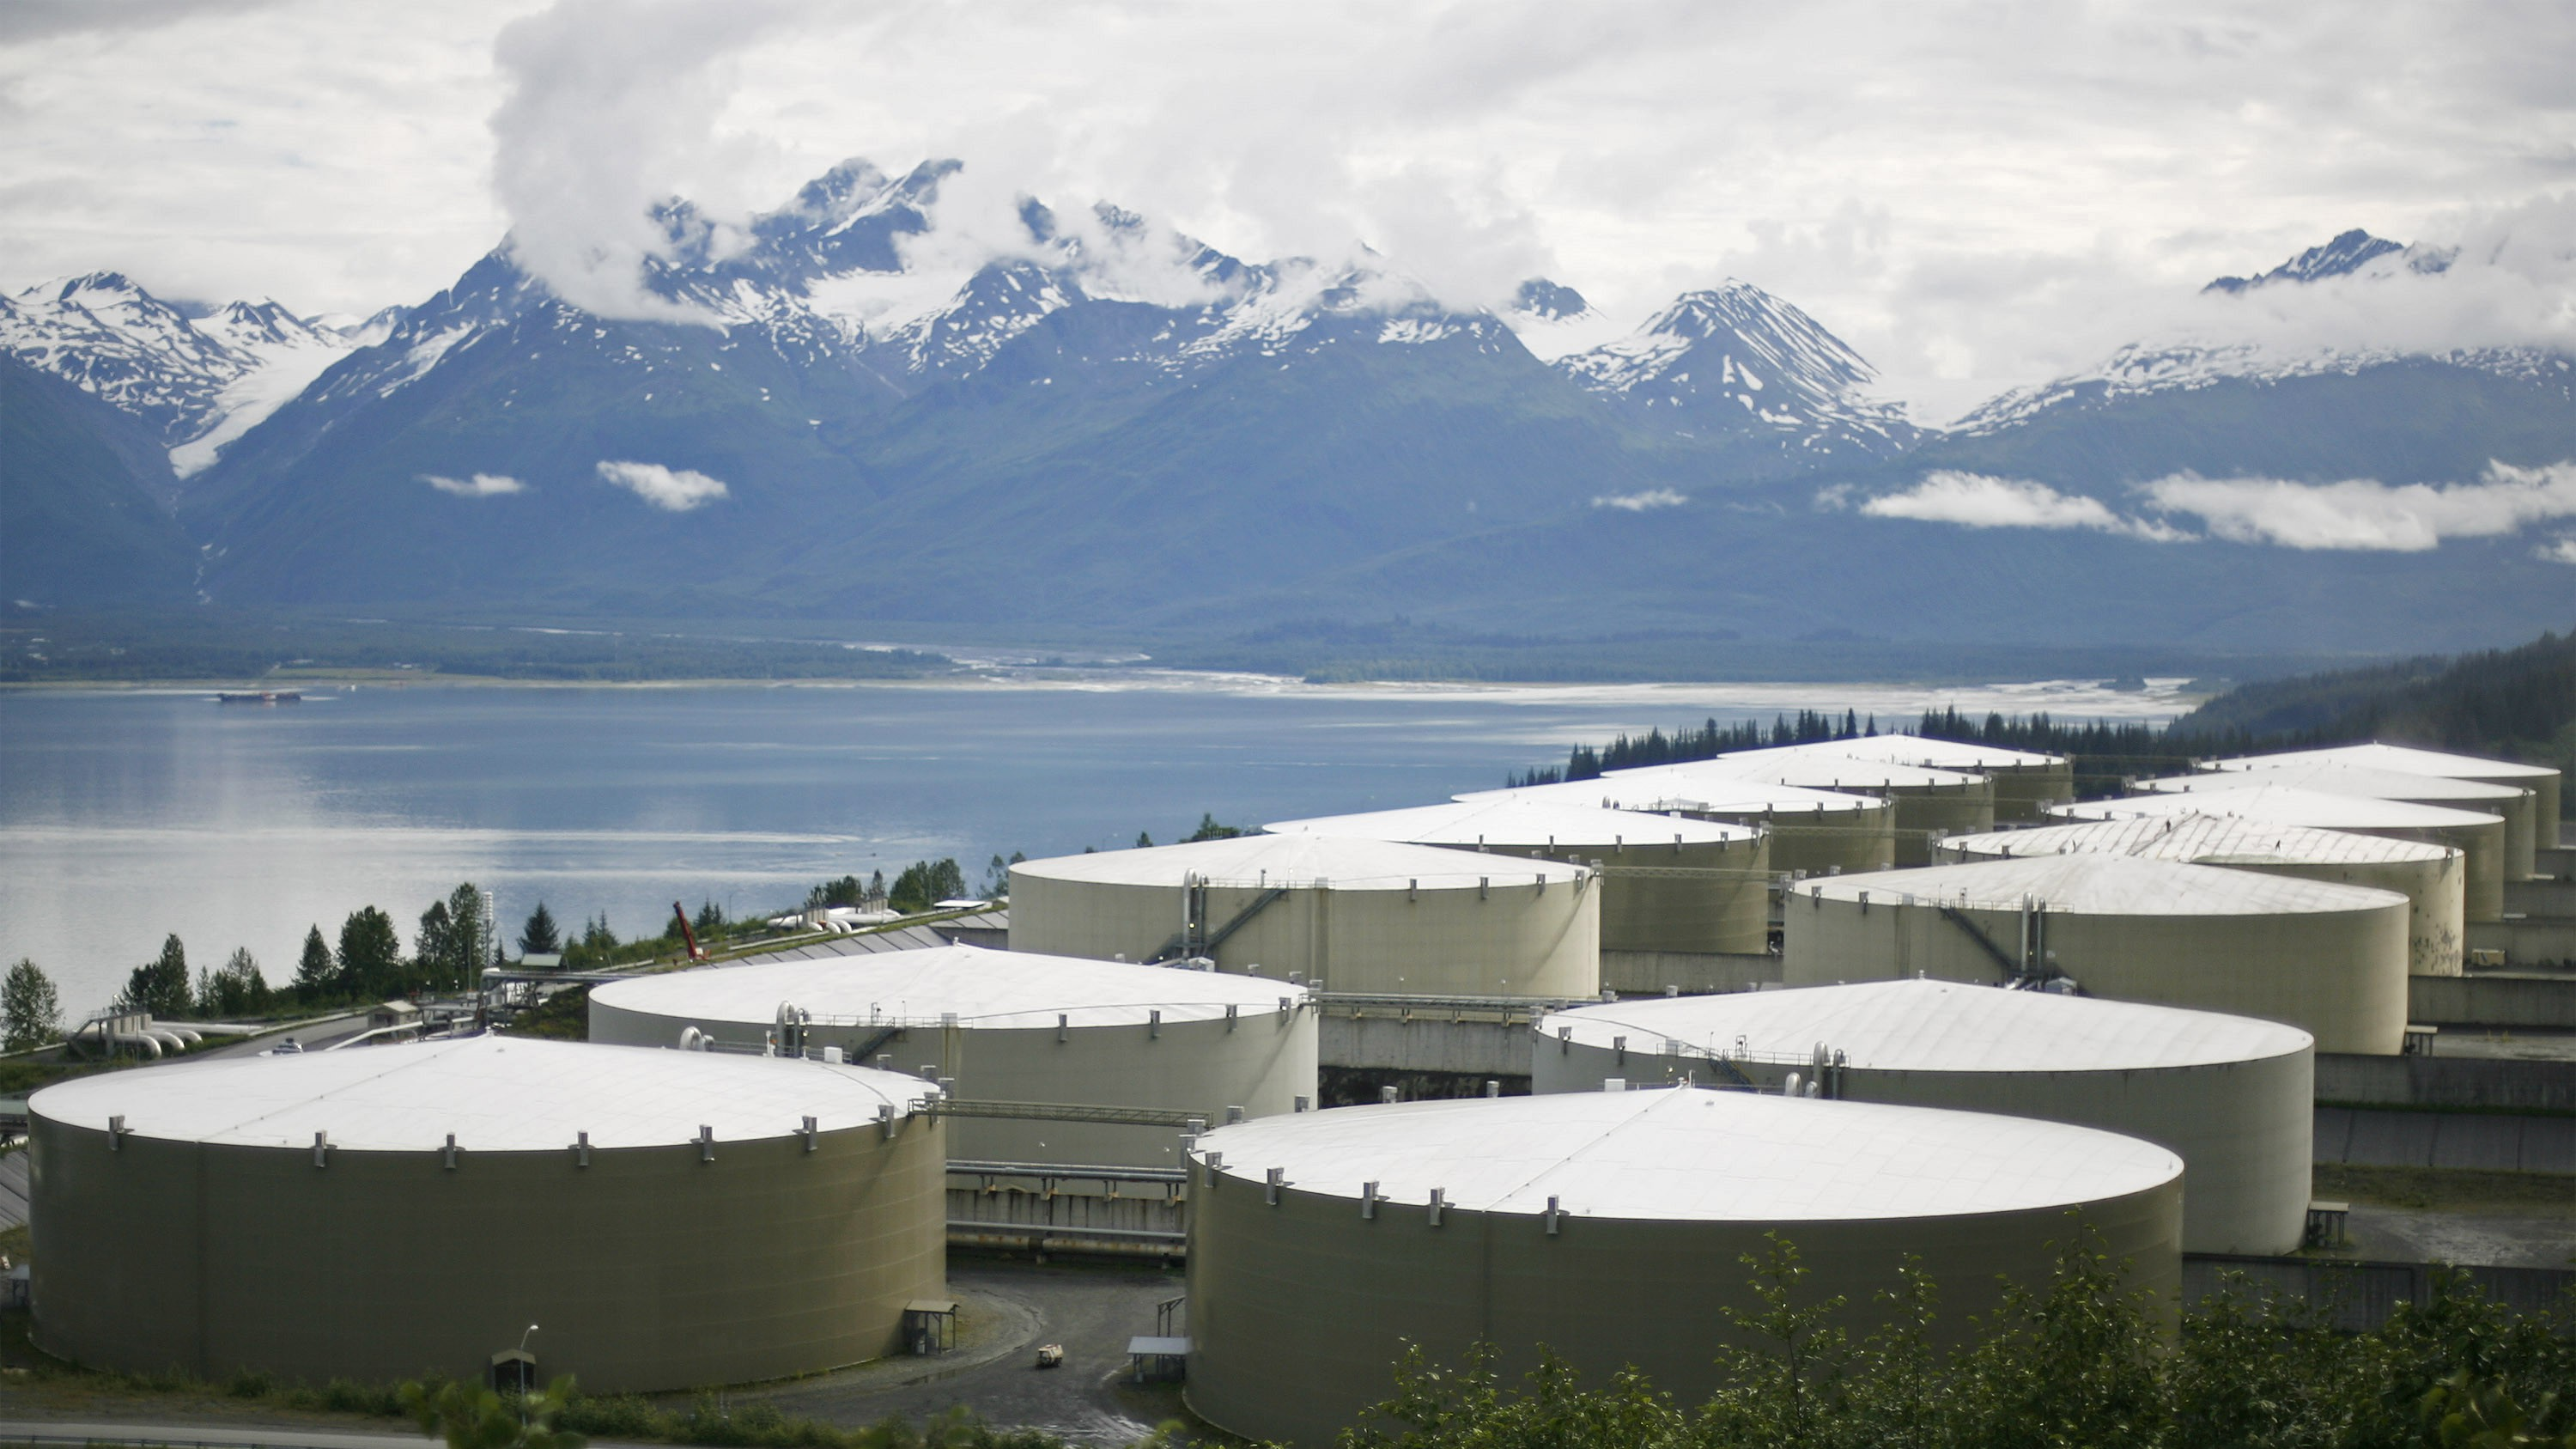 A field of 14 storage tanks that each hold 510,000bbls of oil can be seen at the Trans-Alaska Pipeline Marine Terminal in Valdez, Alaska on August 8, 2008.